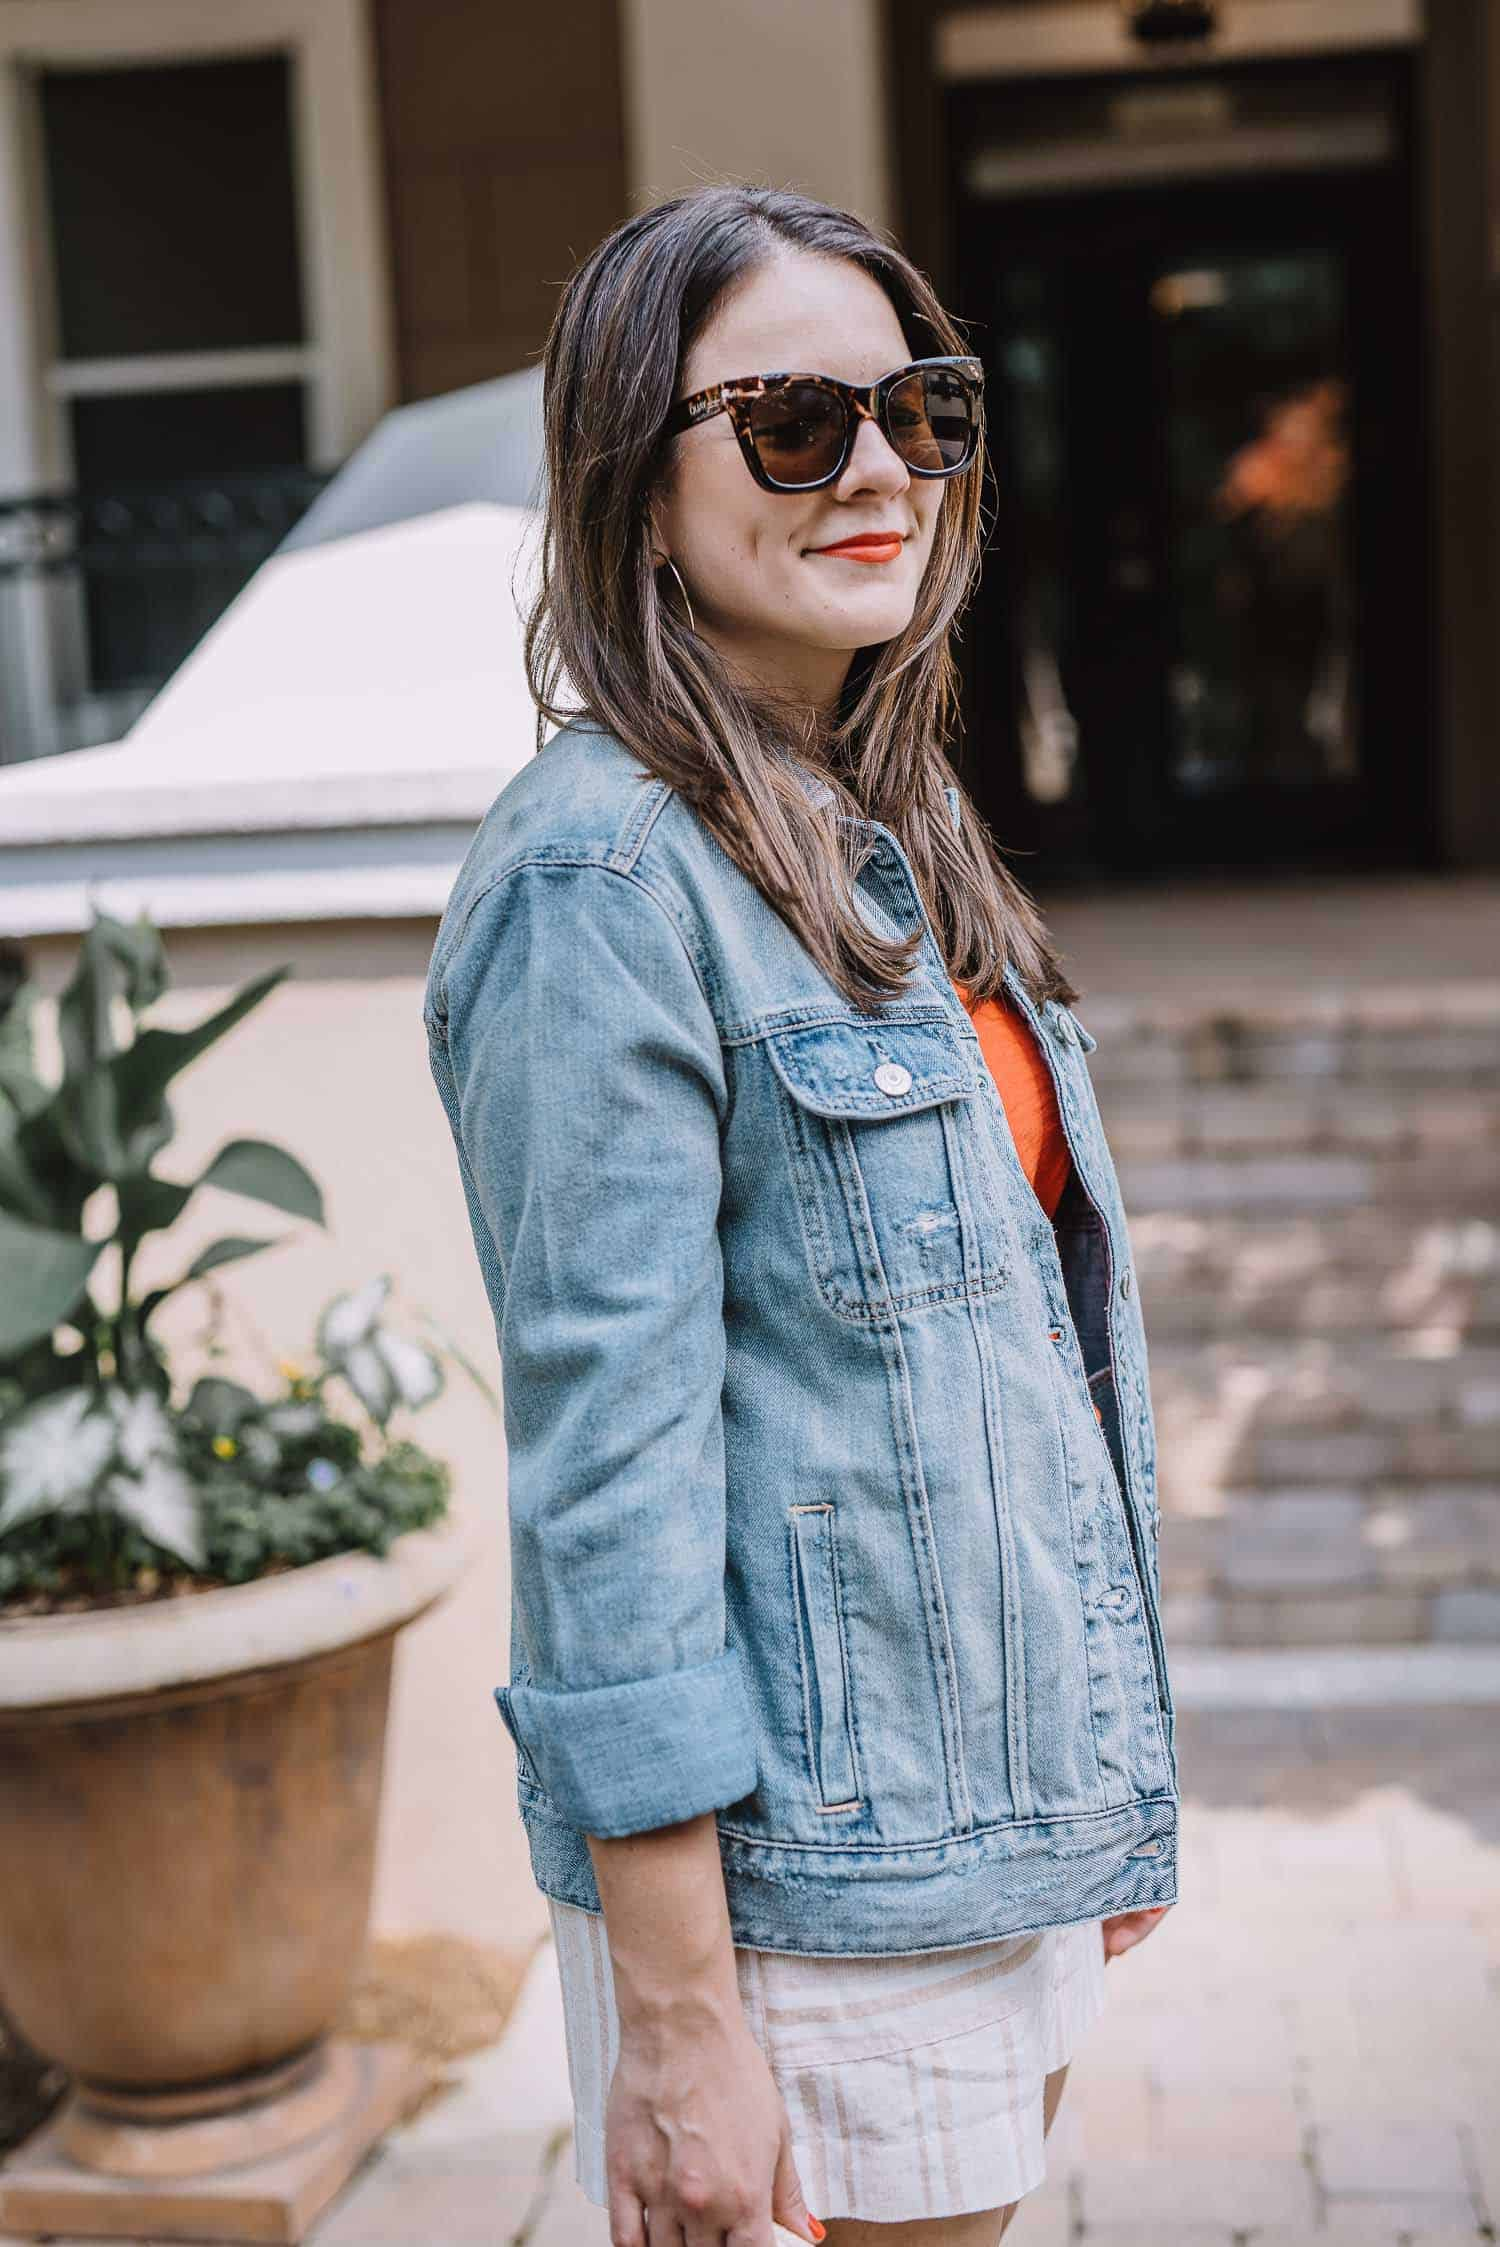 denim jacket, how to style a denim jacket - My Style Vita